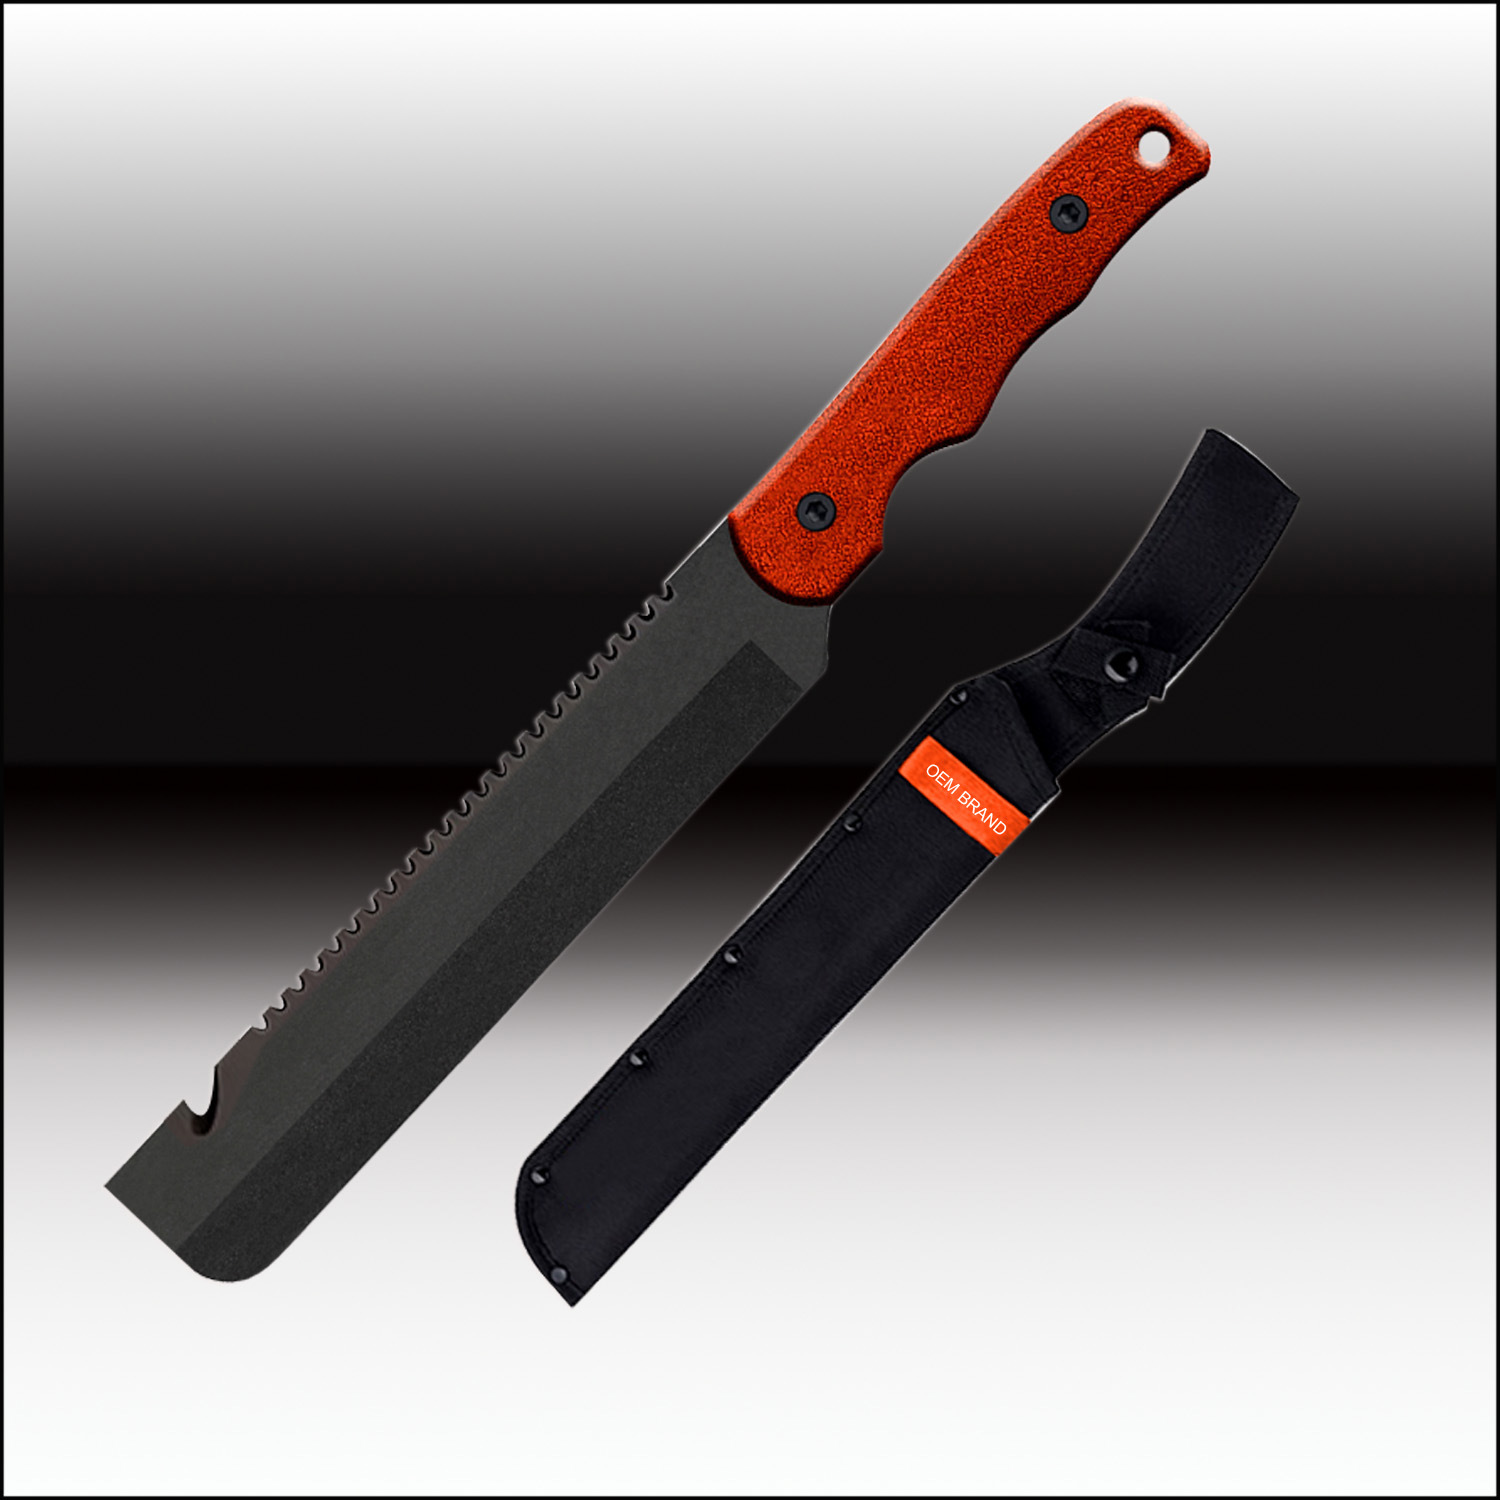 Machete Bowie Knife with a Saw